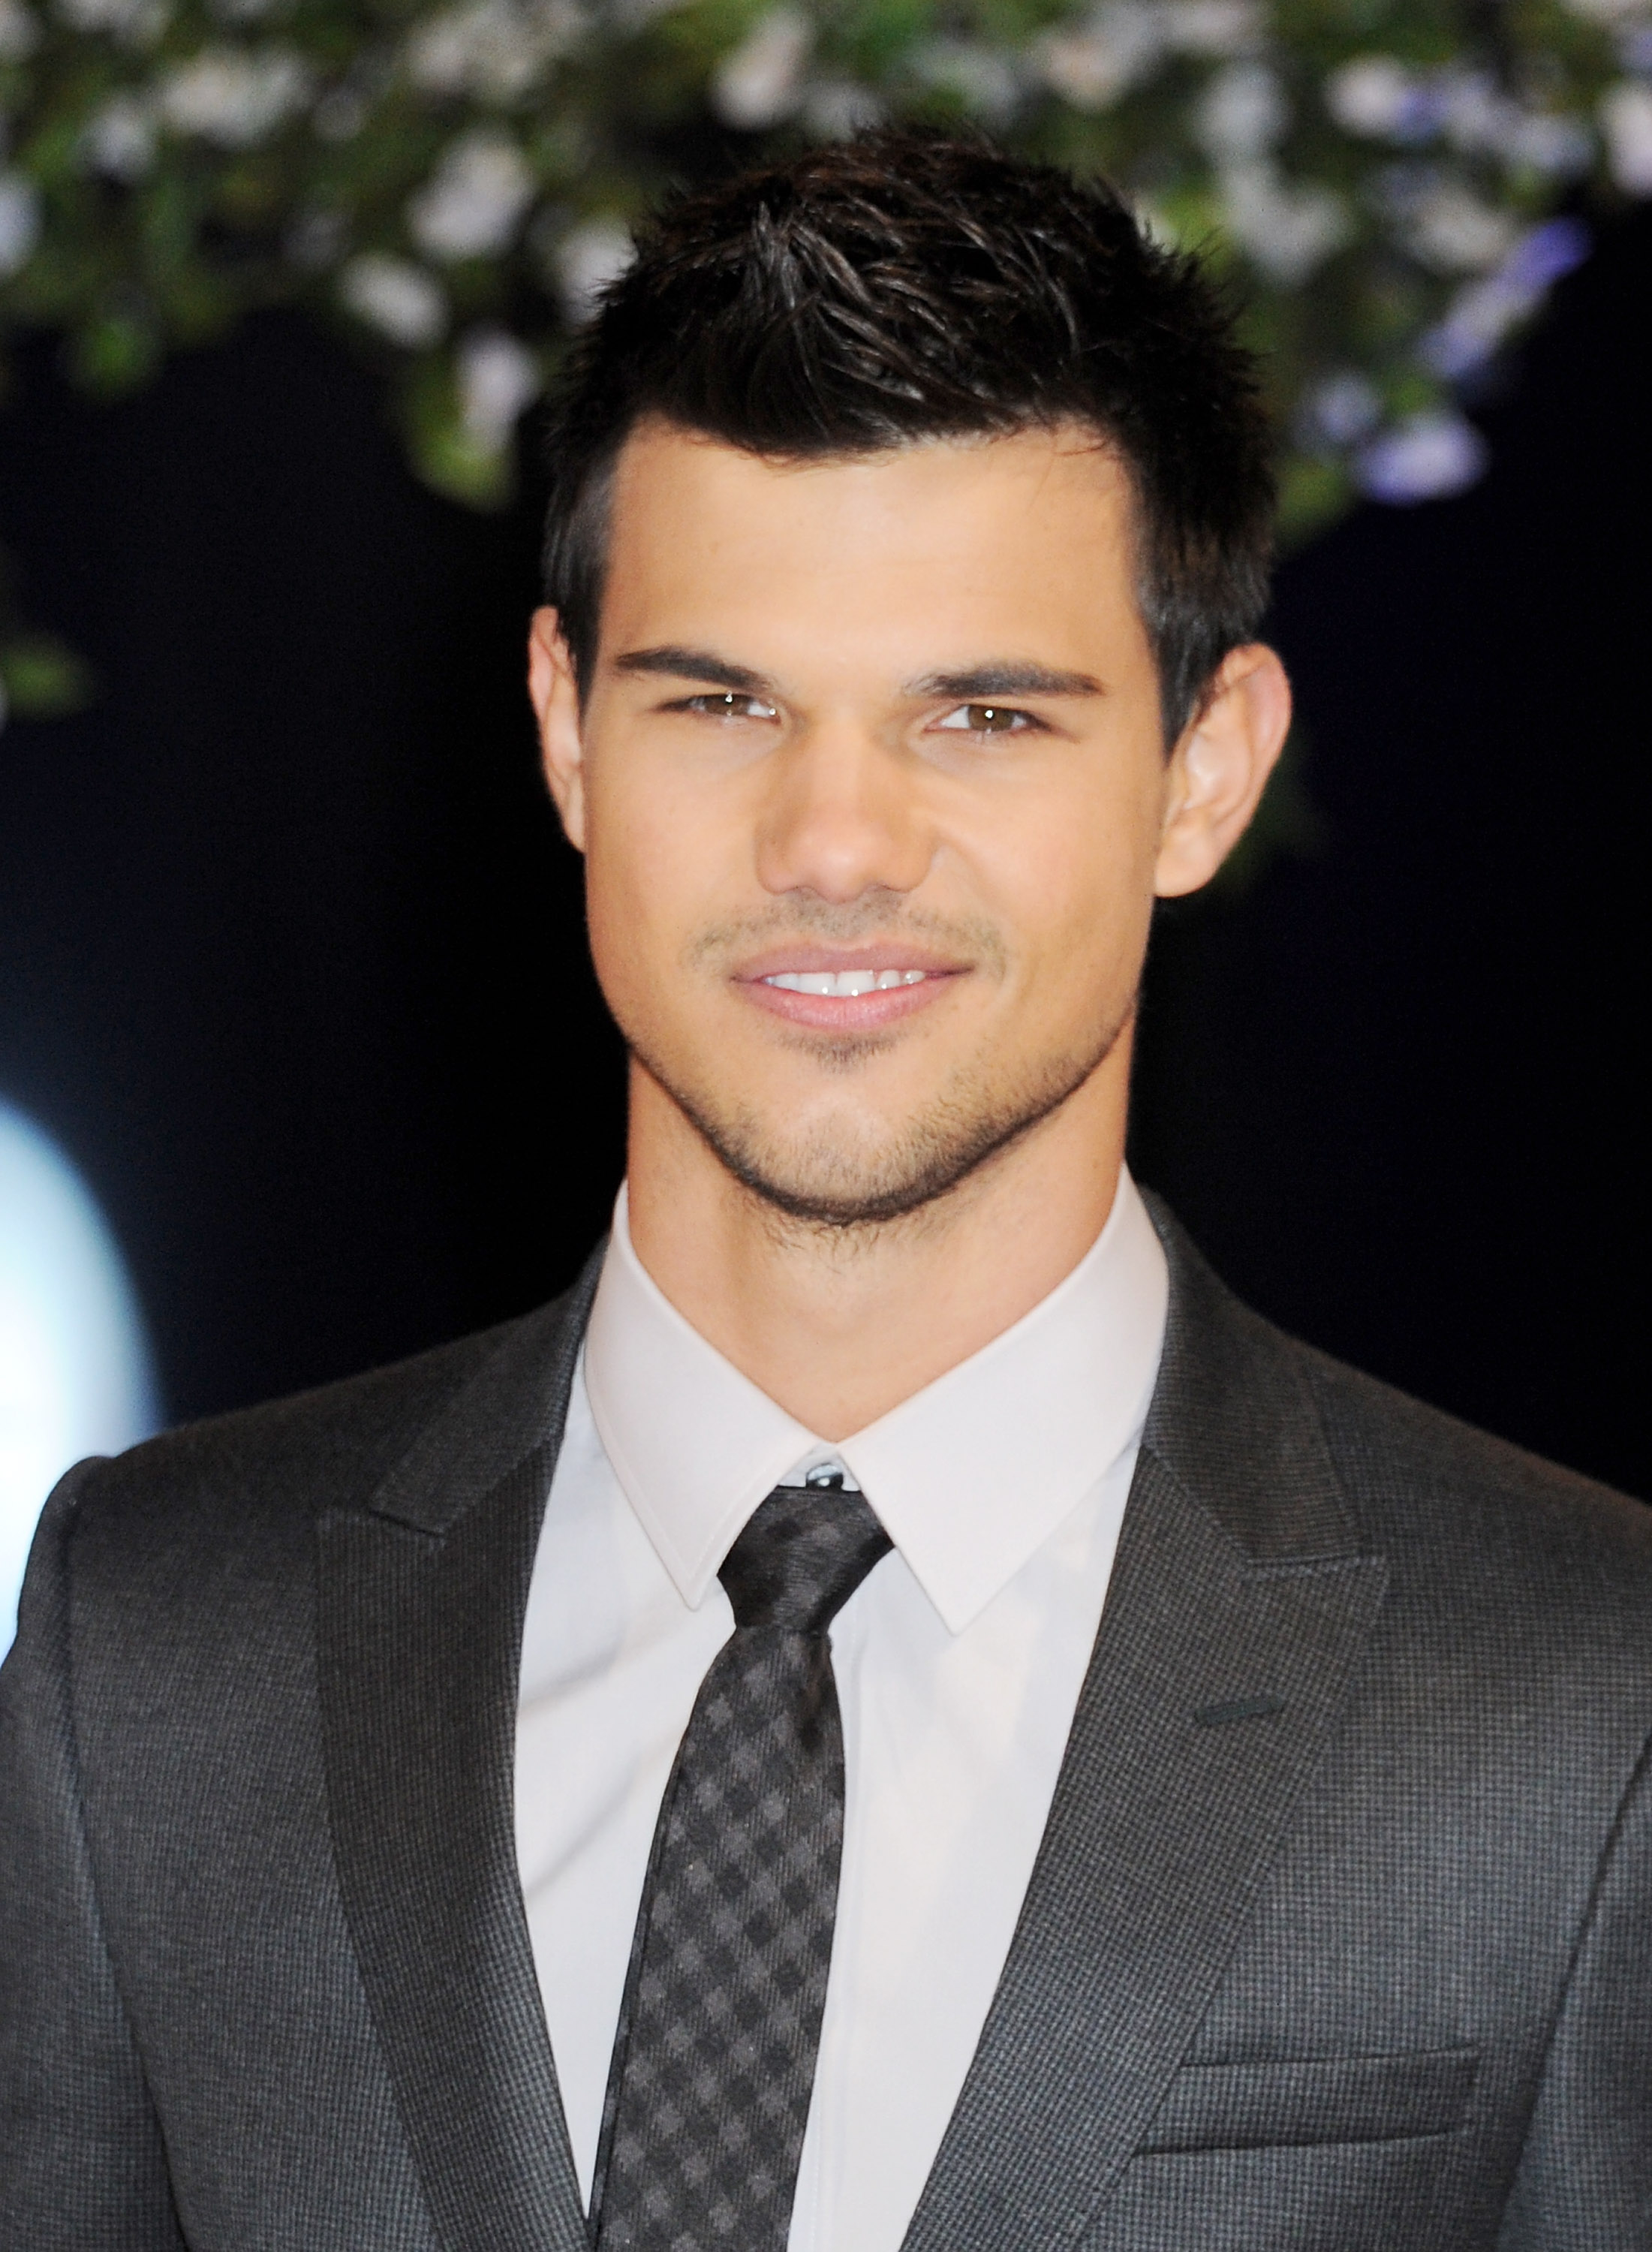 Taylor Lautner at the UK premiere of Breaking Dawn Part 1.